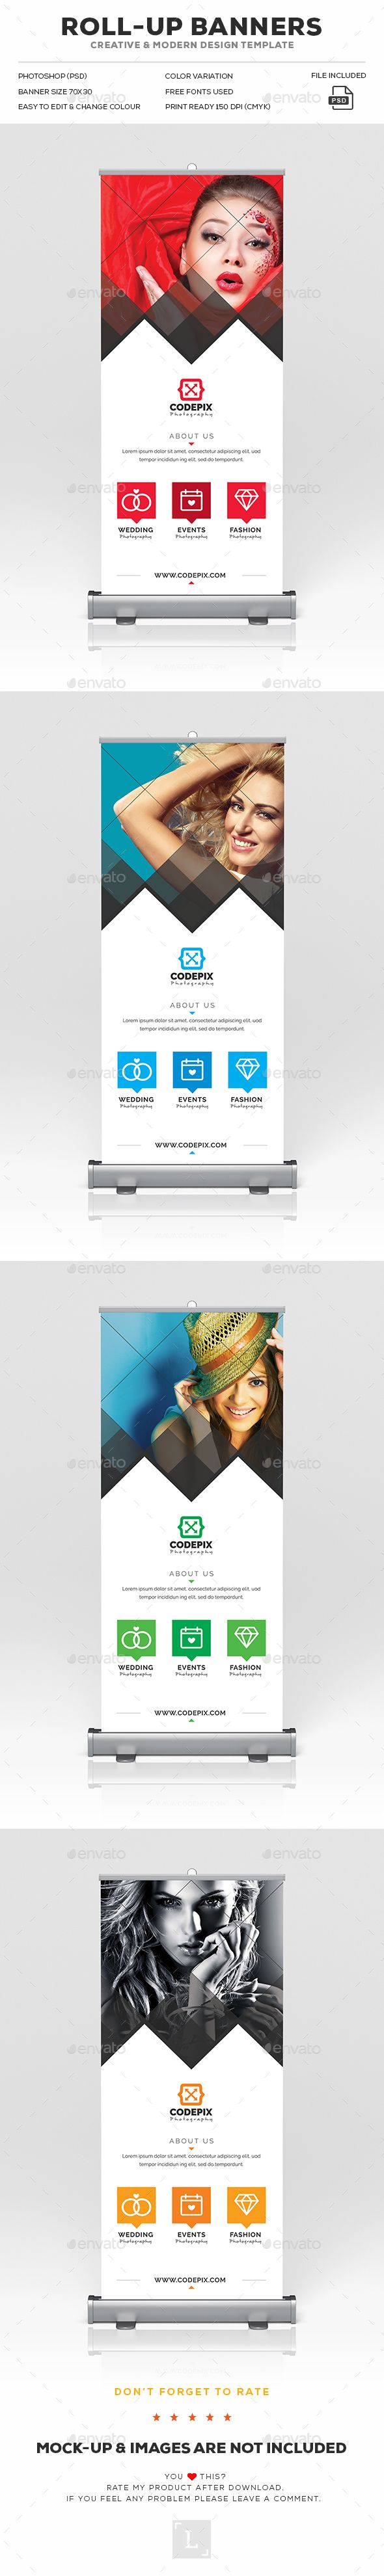 Photography Roll-Up Banner Design Template - Signage Ads Rool Up Banner Print Te...